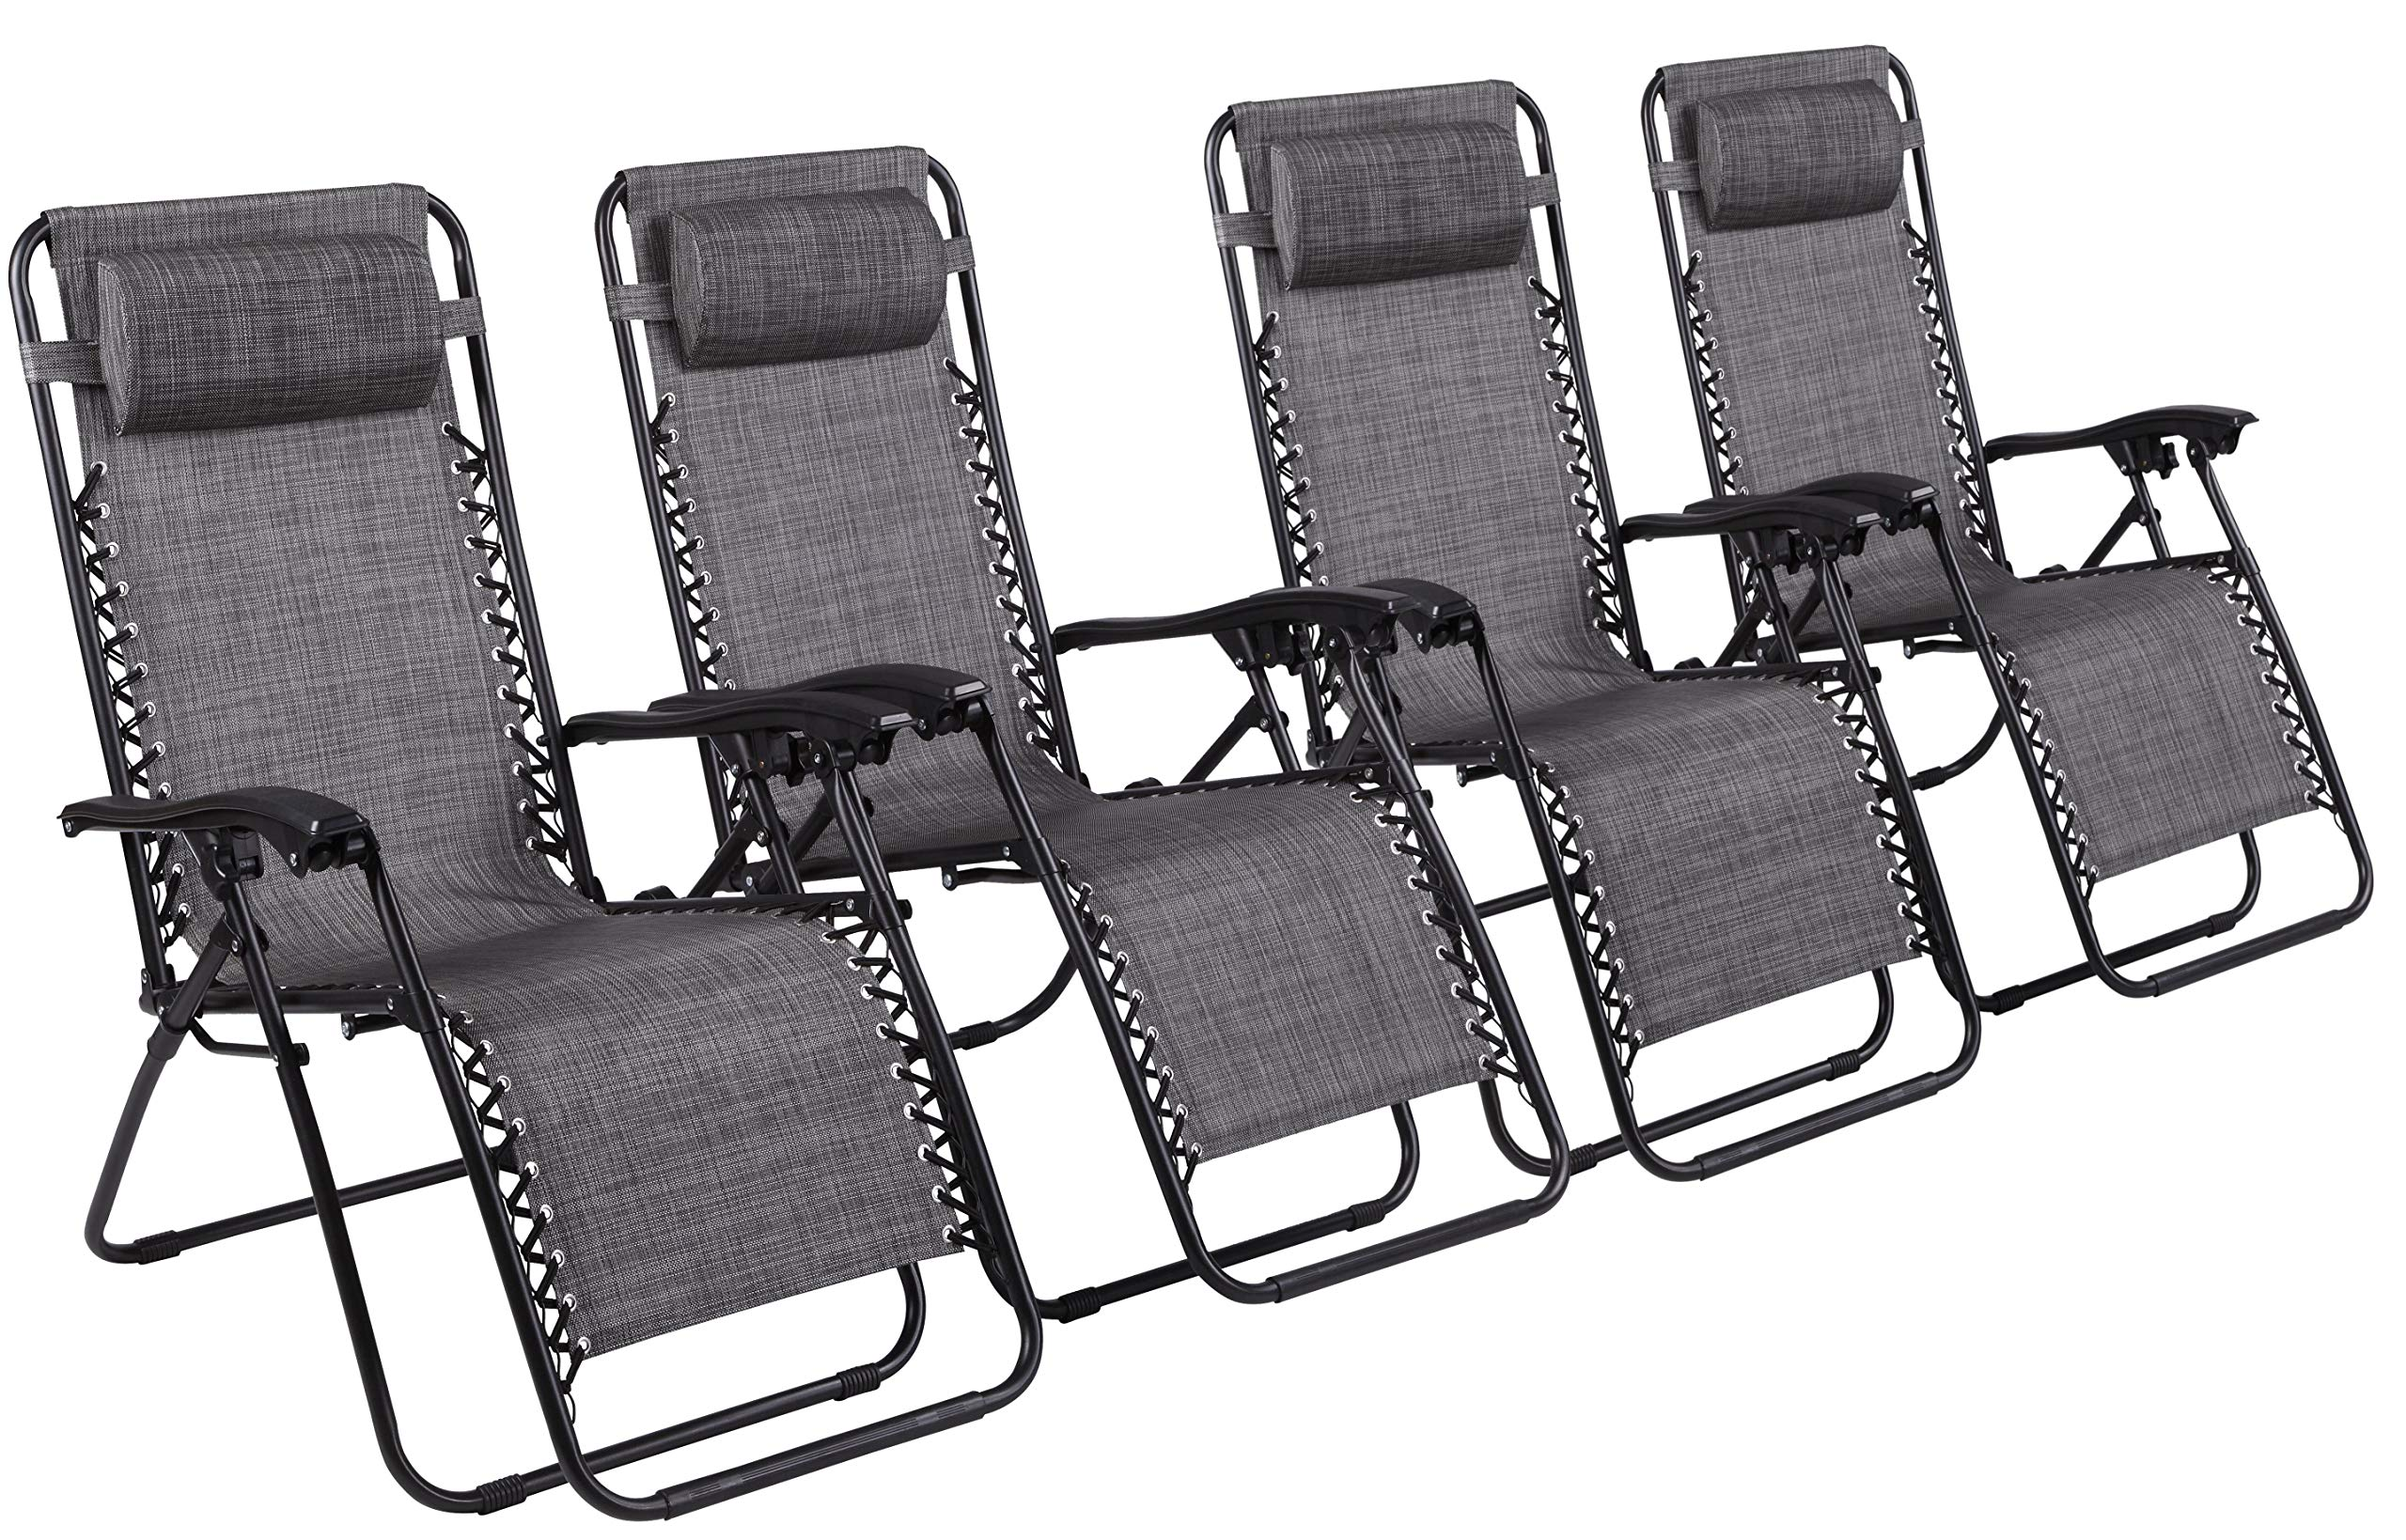 Naomi Home Zero Gravity Lounge Patio Outdoor Recliner Chairs Gray/Set of 4